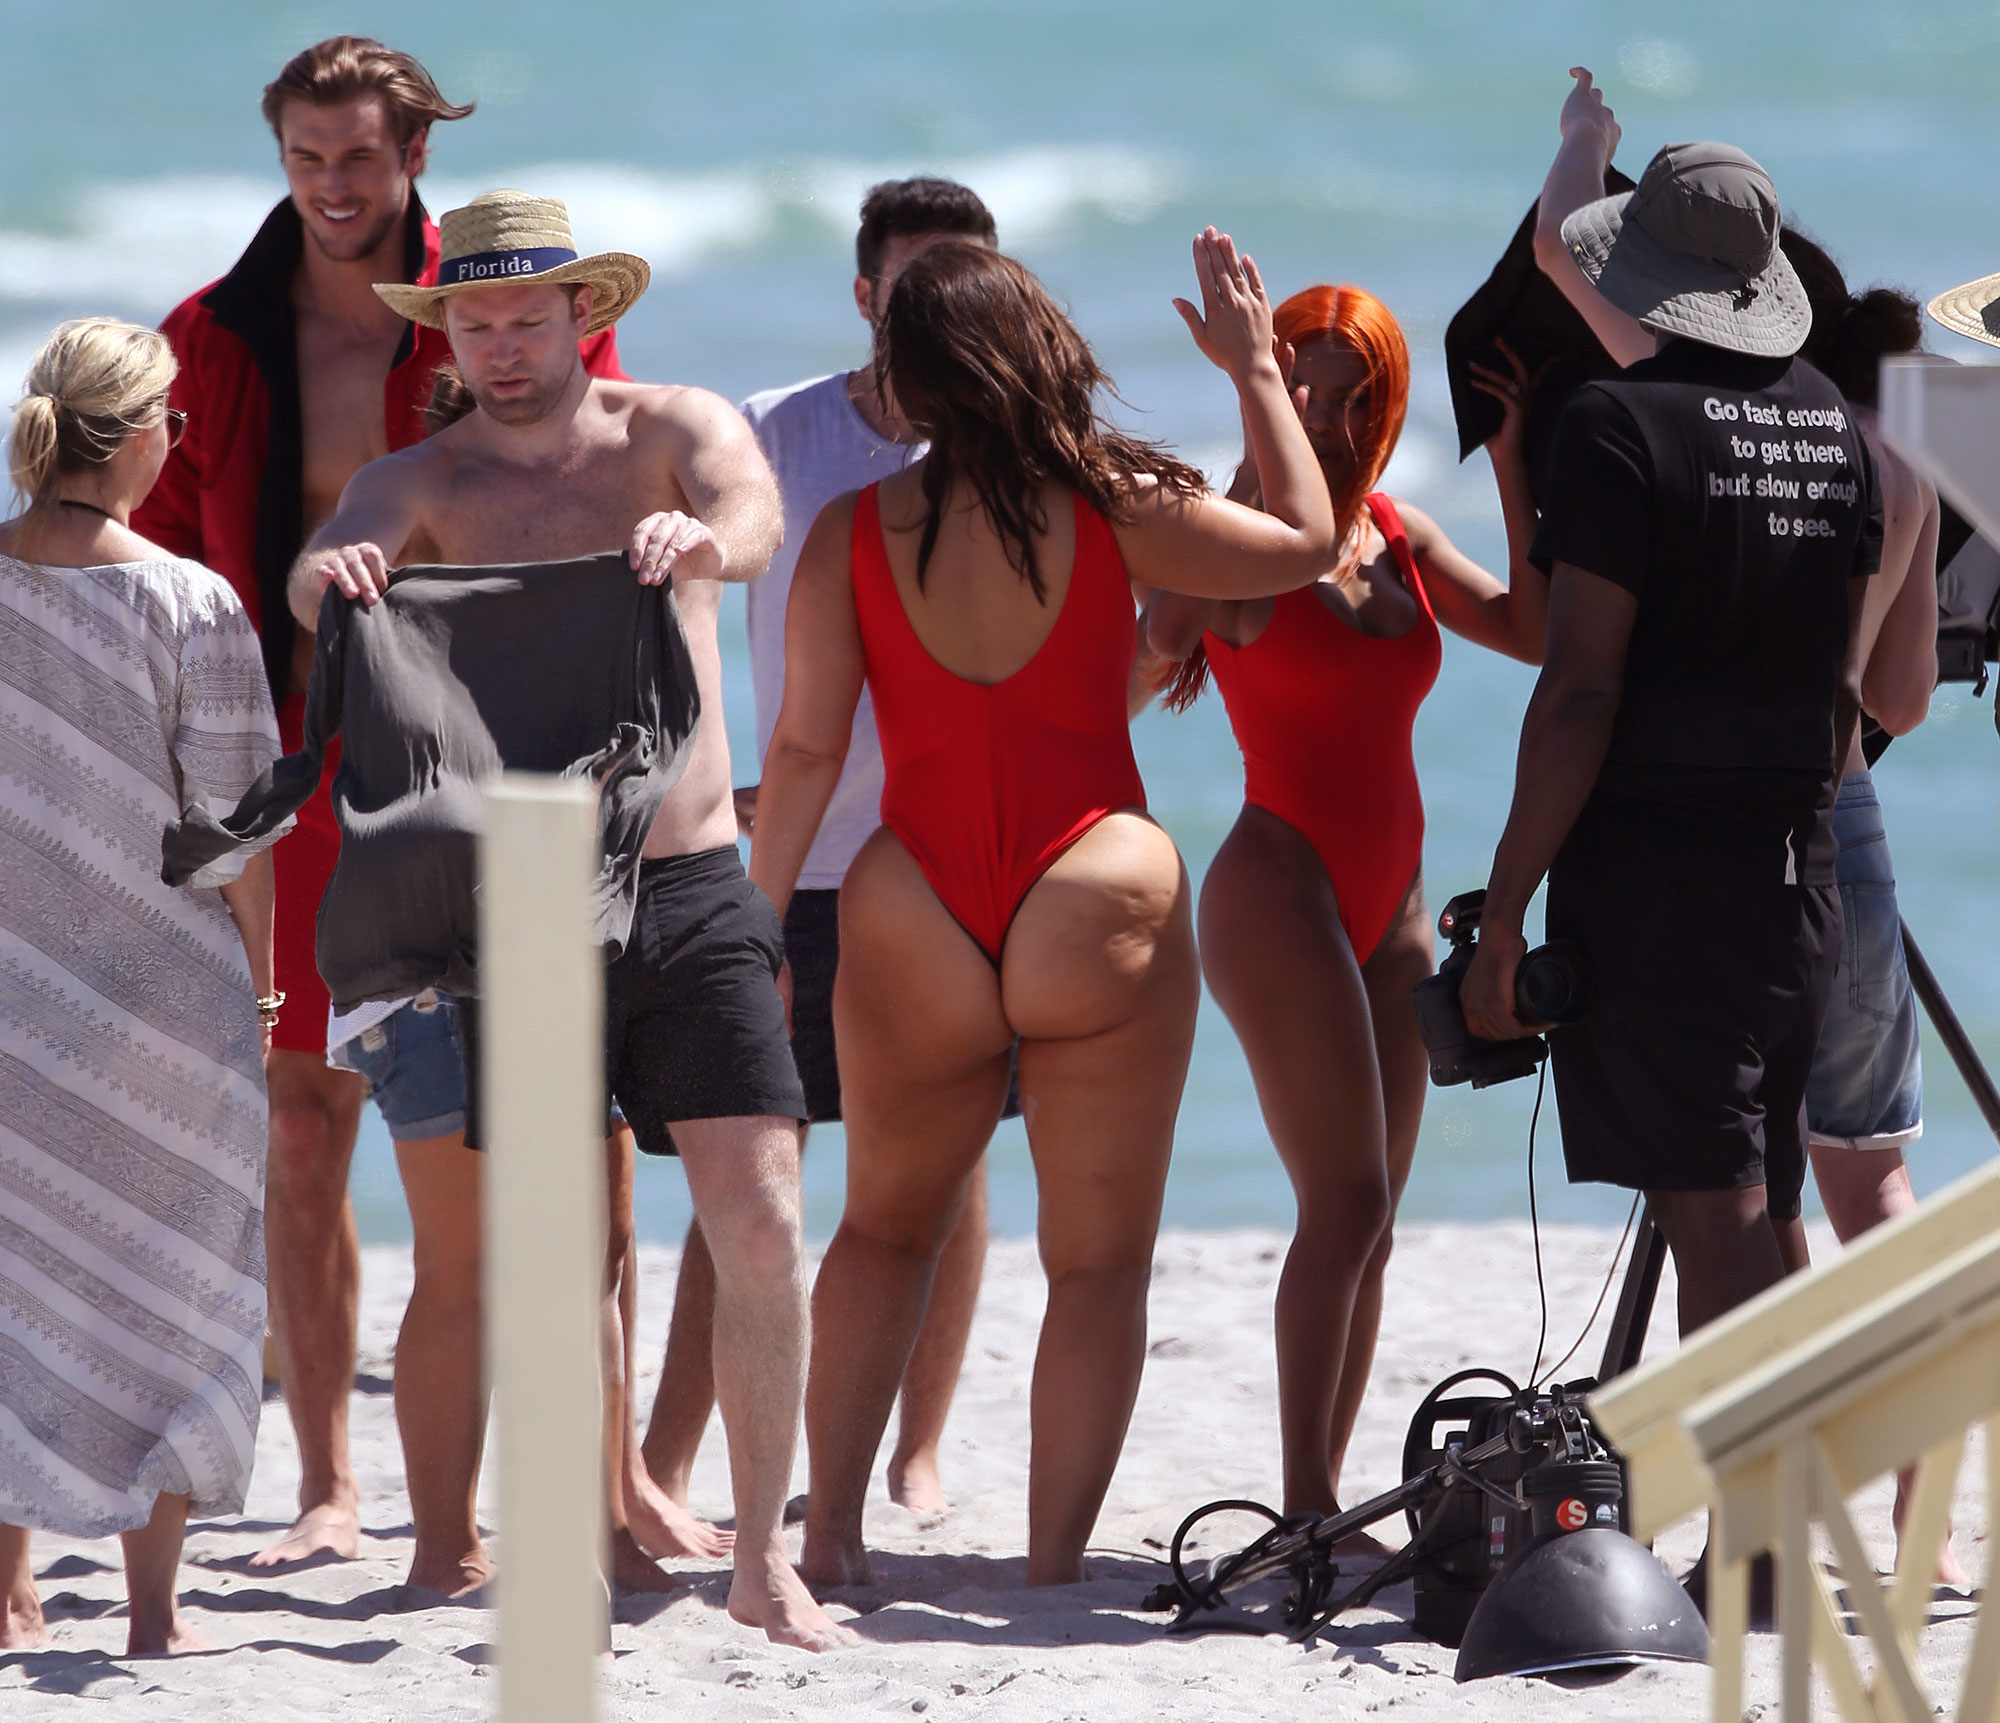 162479, Red Hot! Ashley Graham shows off her famous curves as she takes part in a 'Baywatch' themed photo shoot with Teyana Taylor on Miami Beach. Wearing a bright red Brazilian cut swimsuit, the plus sized beauty posed on a 'Bay Beach Patrol Ocean Rescue' jet ski, before taking it for a spin. Miami, Florida - Wednesday March 1, 2017. Photograph: Thibault Monnier, © Pacific Coast News. Los Angeles Office (PCN): +1 310.822.0419 UK Office (Photoshot): +44 (0) 20 7421 6000 sales@pacificcoastnews.com FEE MUST BE AGREED PRIOR TO USAGE